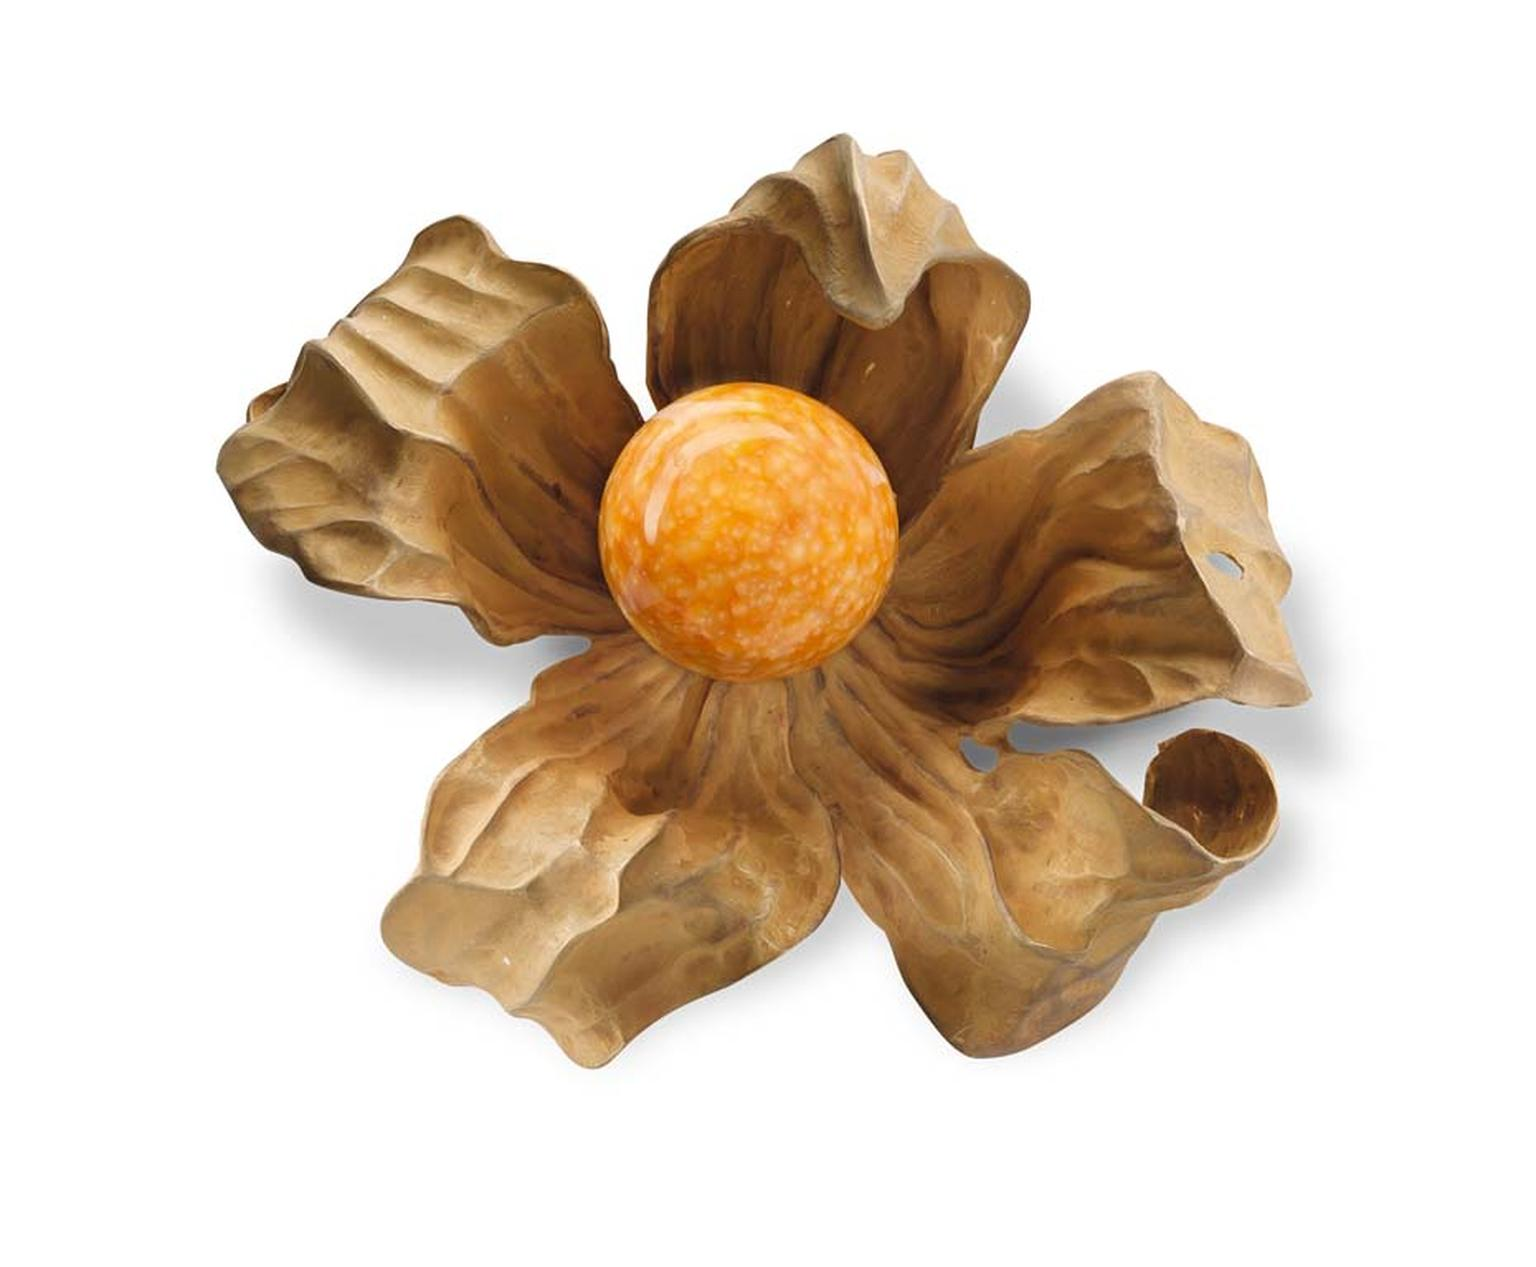 Hemmerle physalis brooch featuring a rare sun-orange melo pearl shining inside a delicate lantern-like case rendered in gold